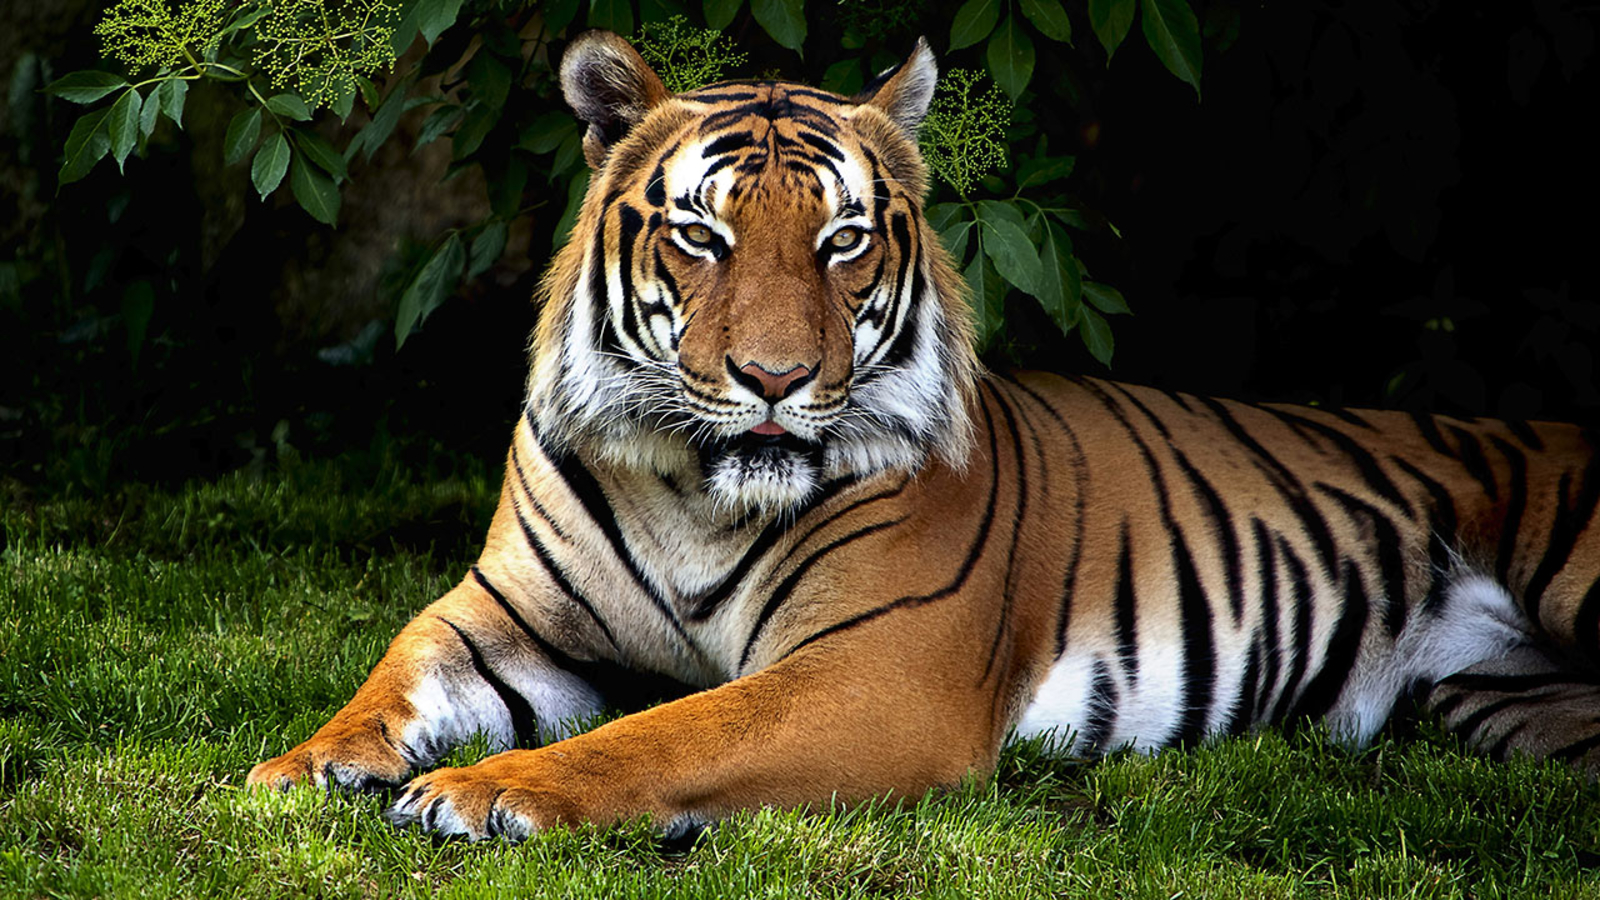 Topeka Zoo keeper injured in incident with tiger